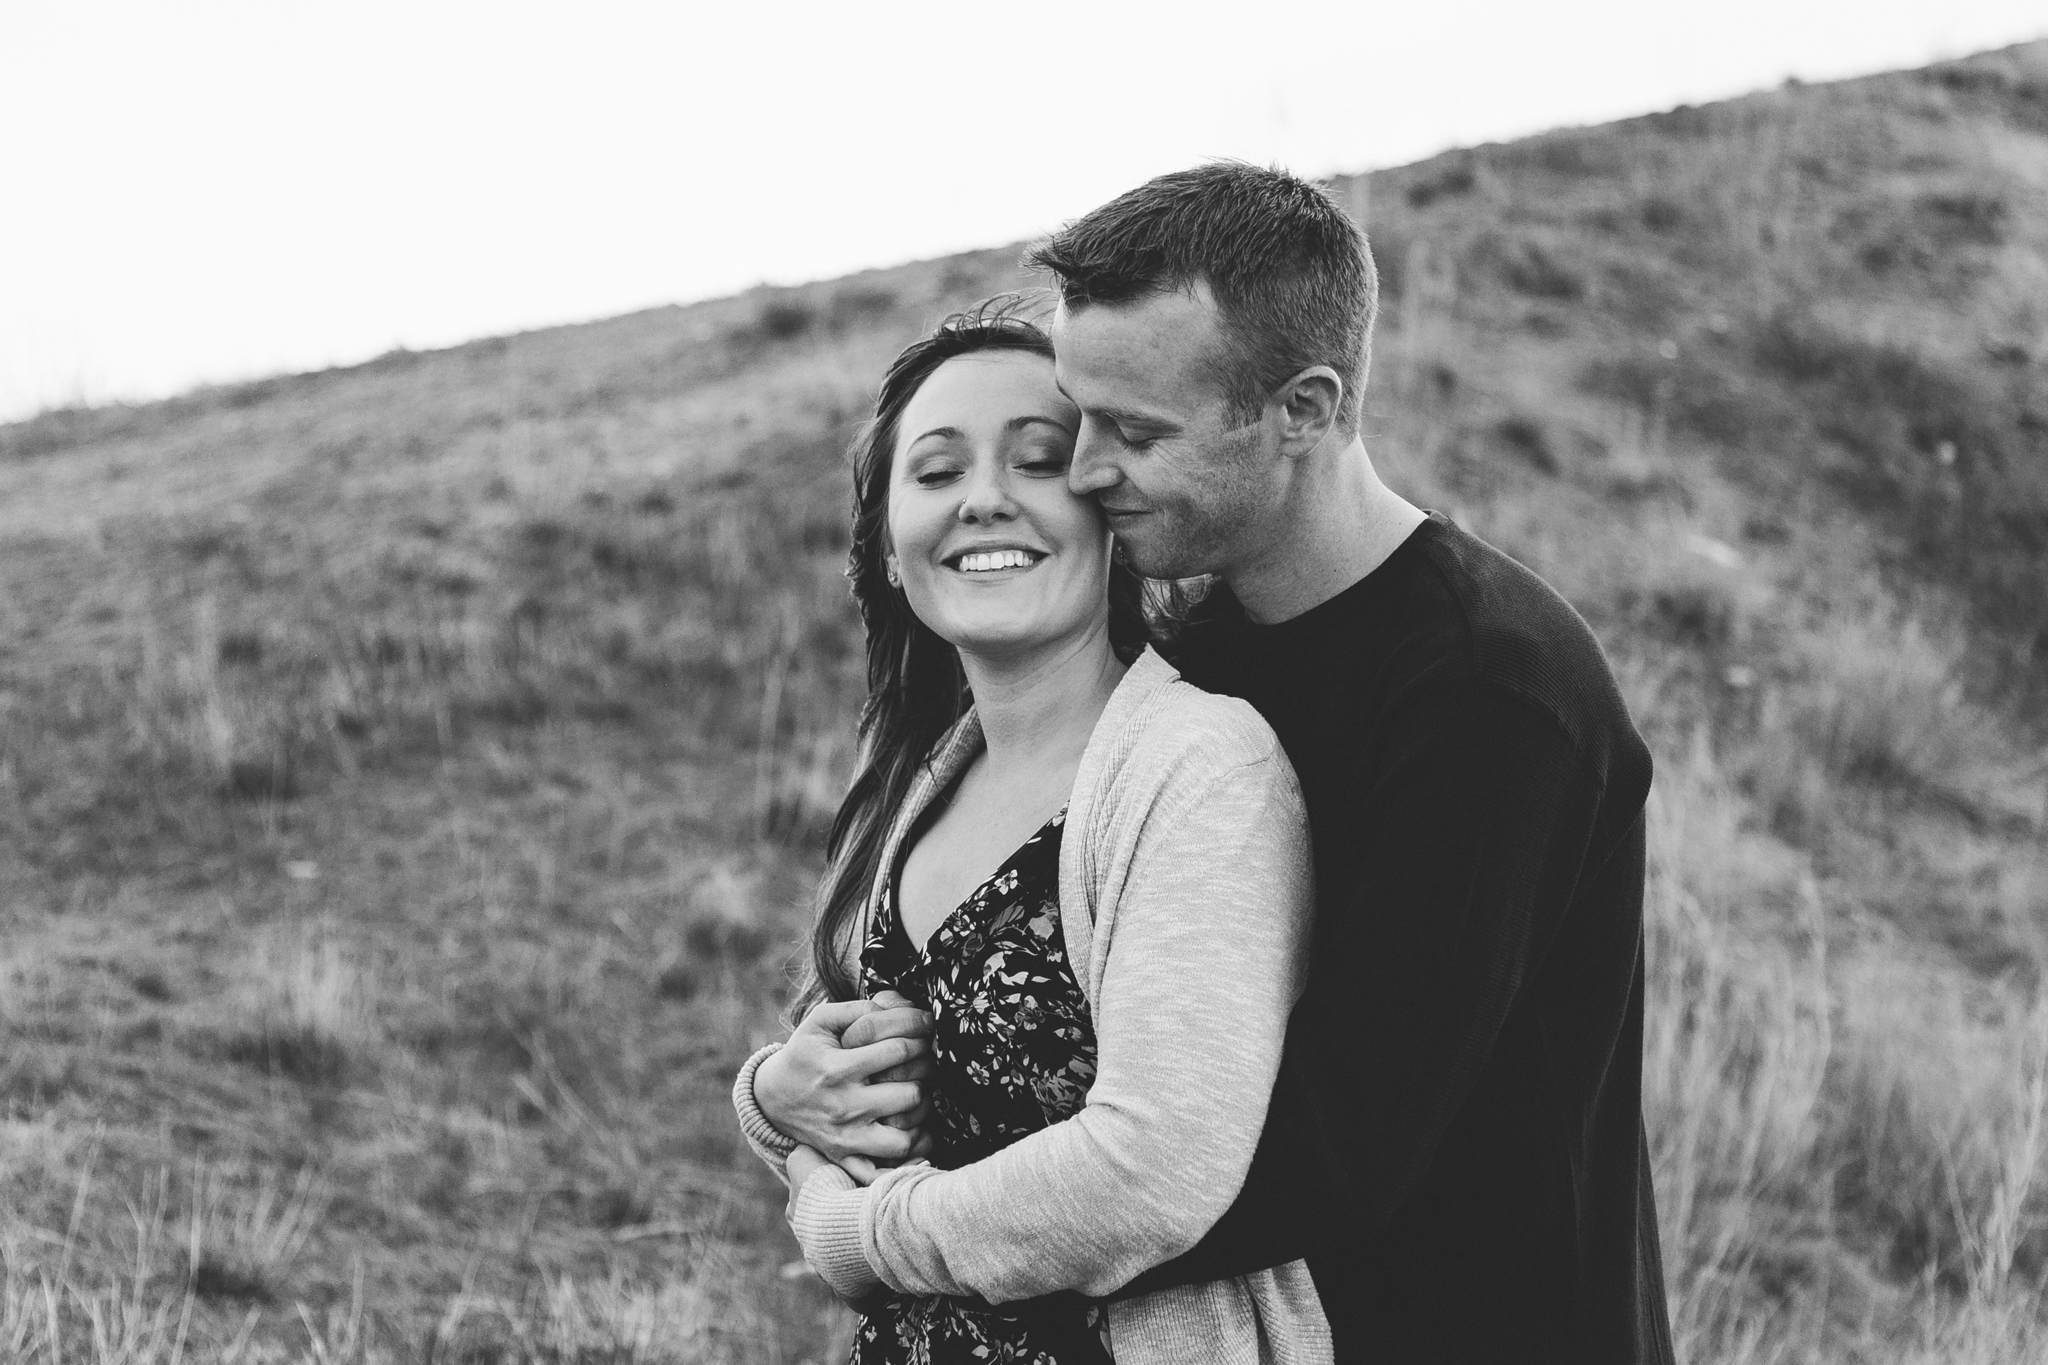 lethbridge-photographer-love-and-be-loved-photography-jessica-john-engagement-picture-image-photo-31.jpg